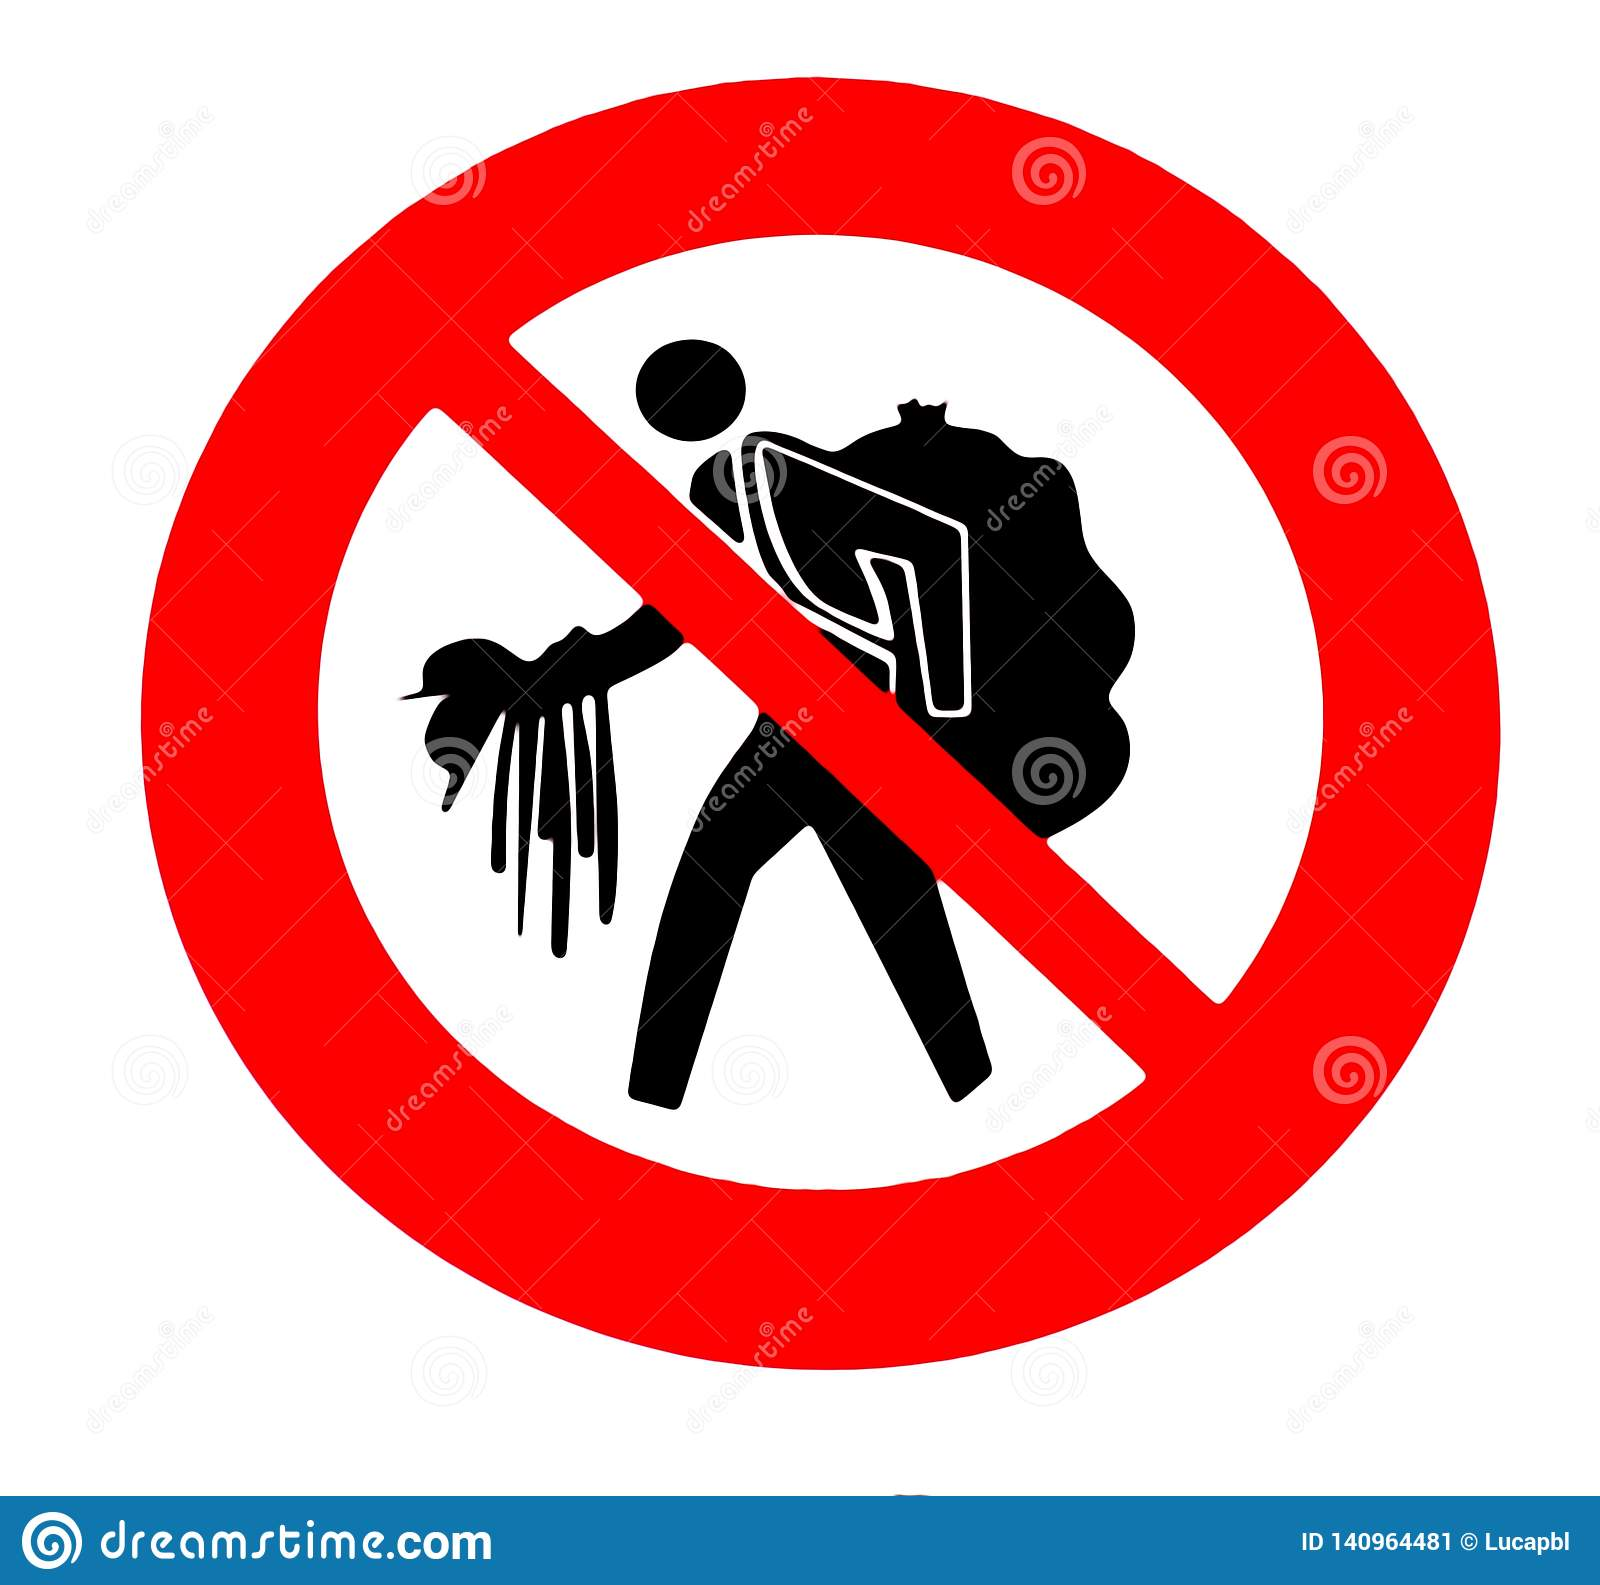 Warning sign used in italian beaches or touristic areas. Do not buy counterfeit goods from unauthorized vendors